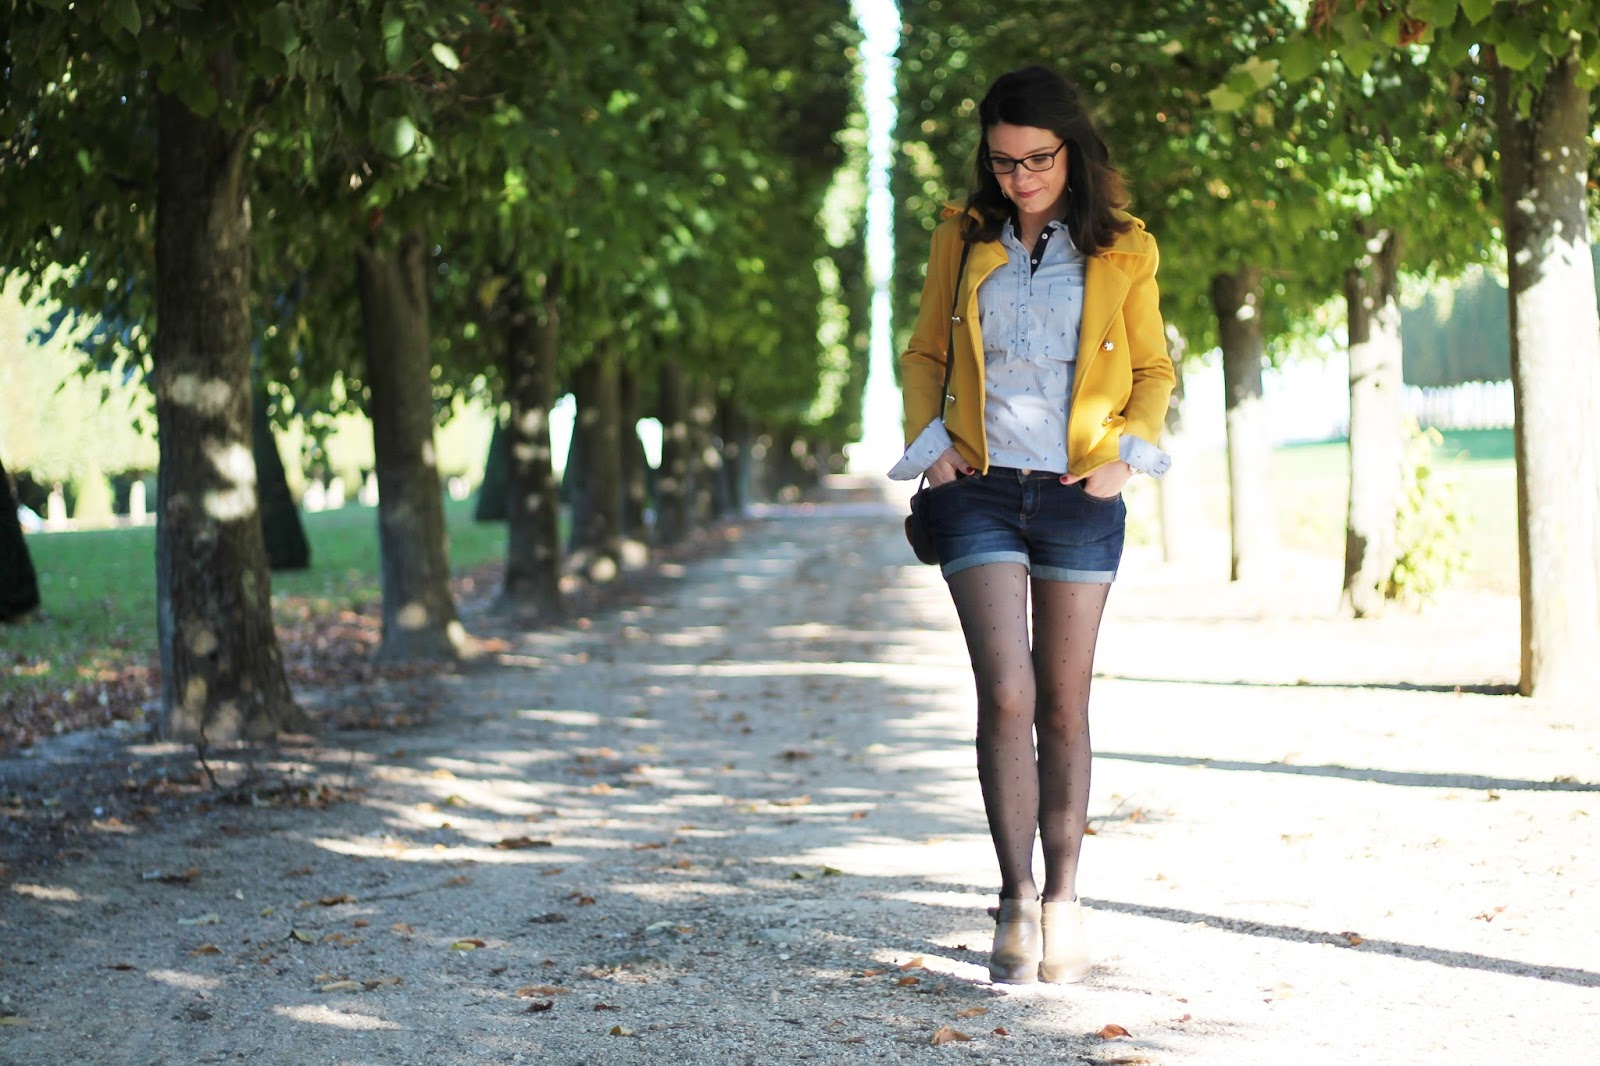 les gommettes de melo blog blogueuse 2017 blogspot blogger french youtube youtubeuse vidéo look lookbook tenue outfit of the day ootd shooting mode fashion zara etam kiabi